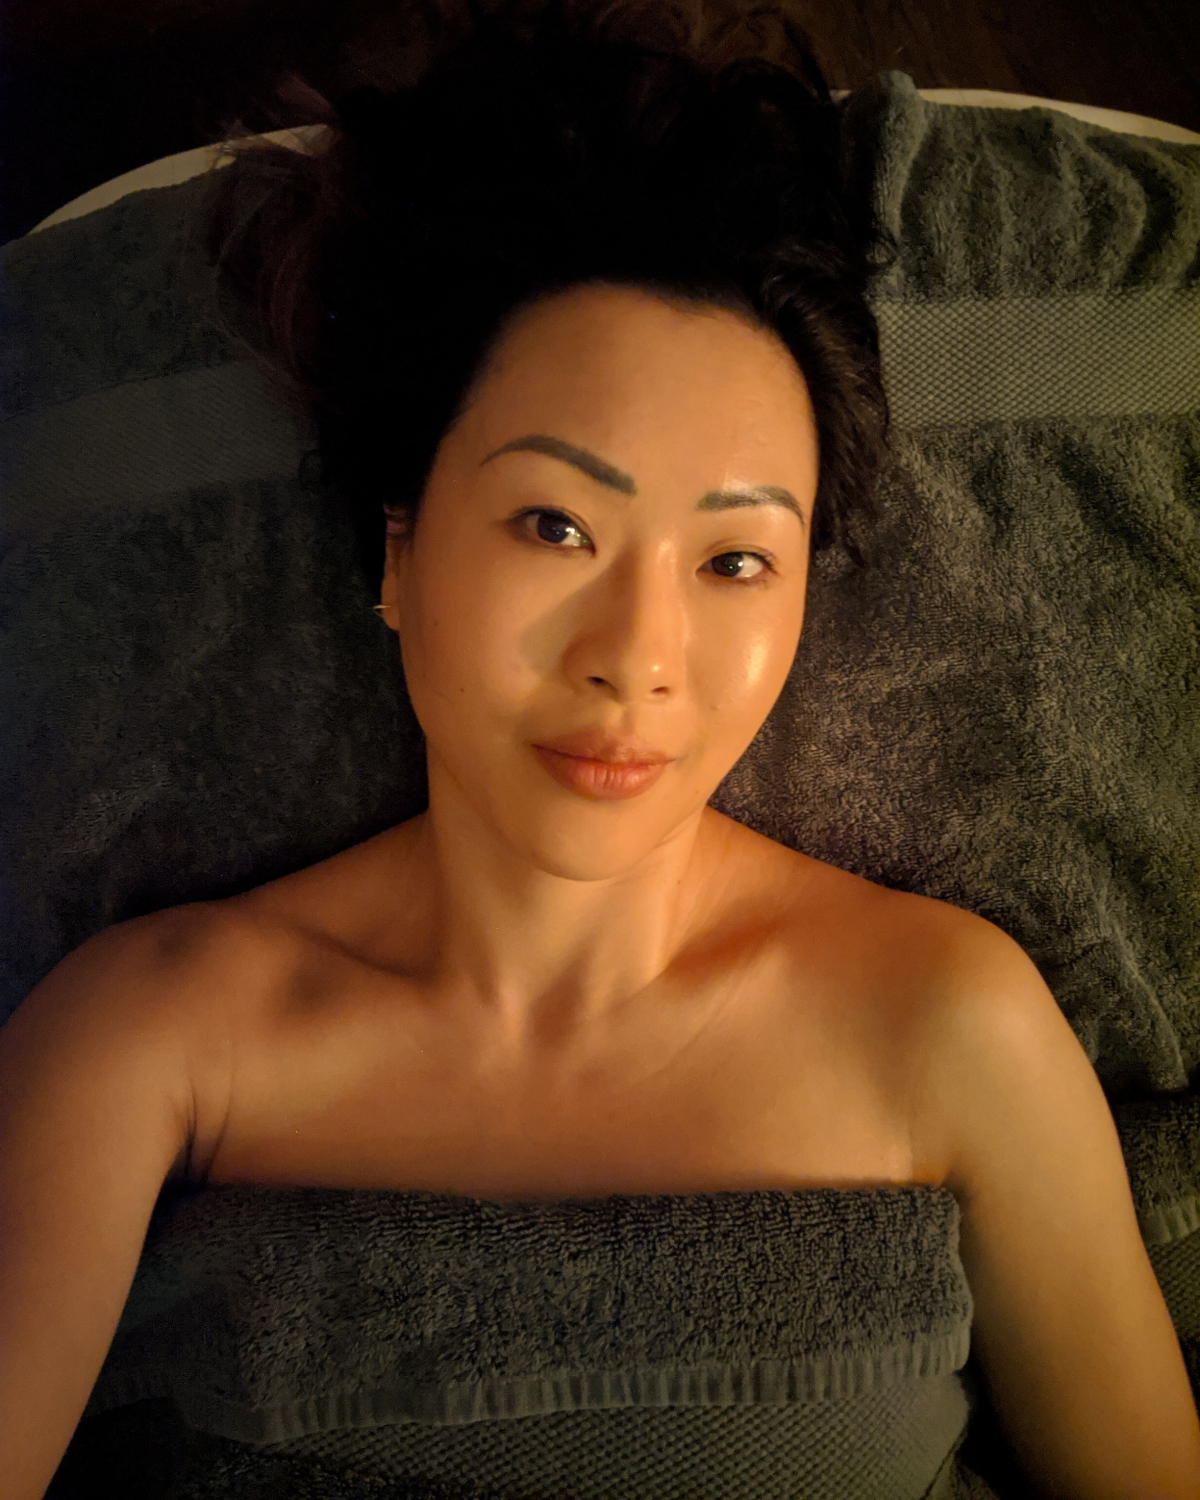 Ting on treatment bed after Lus Spa Renaissance treatment